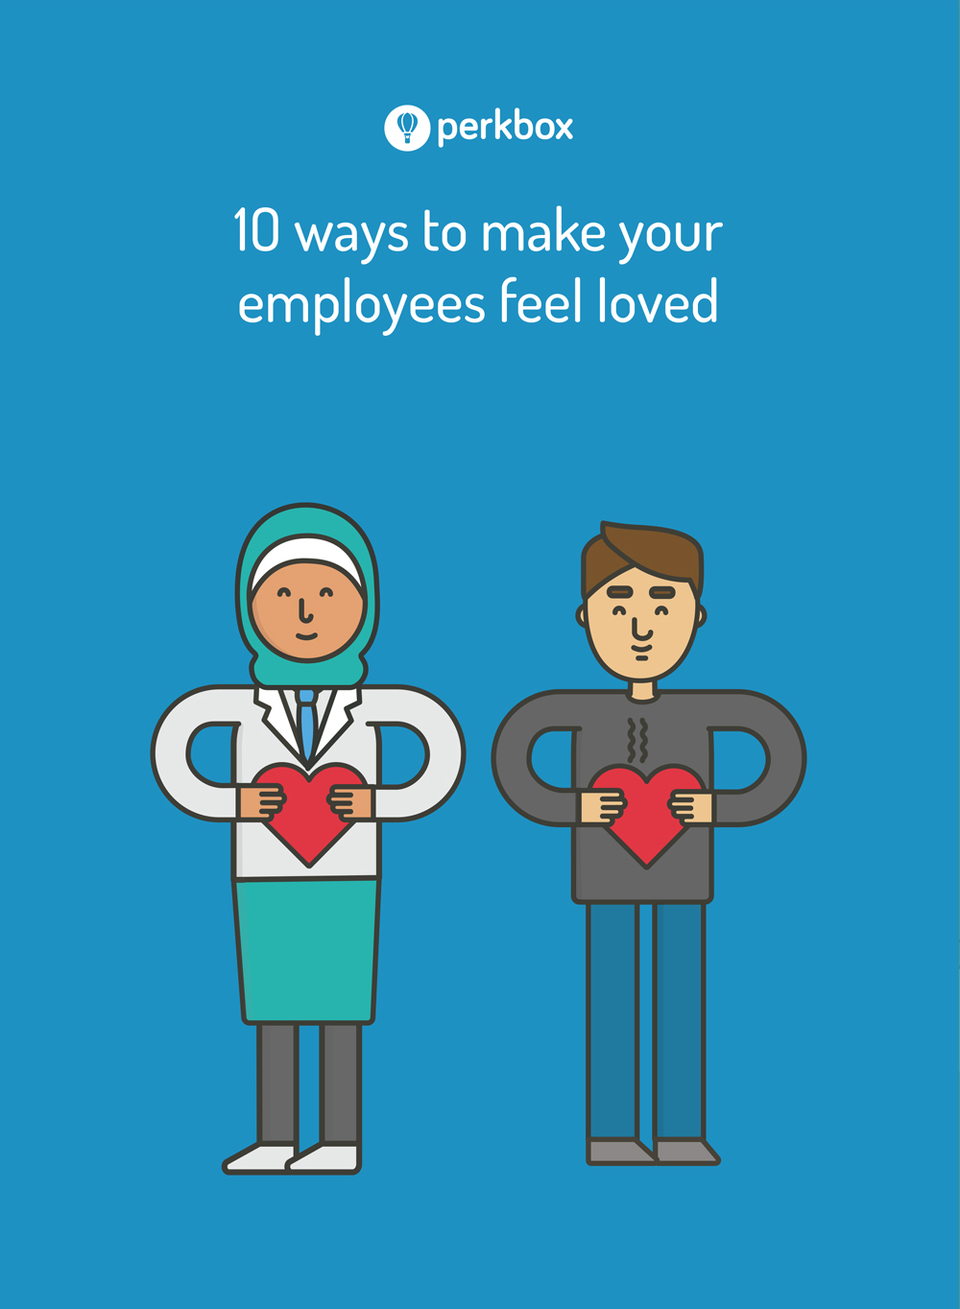 10 ways to make your employees feel loved